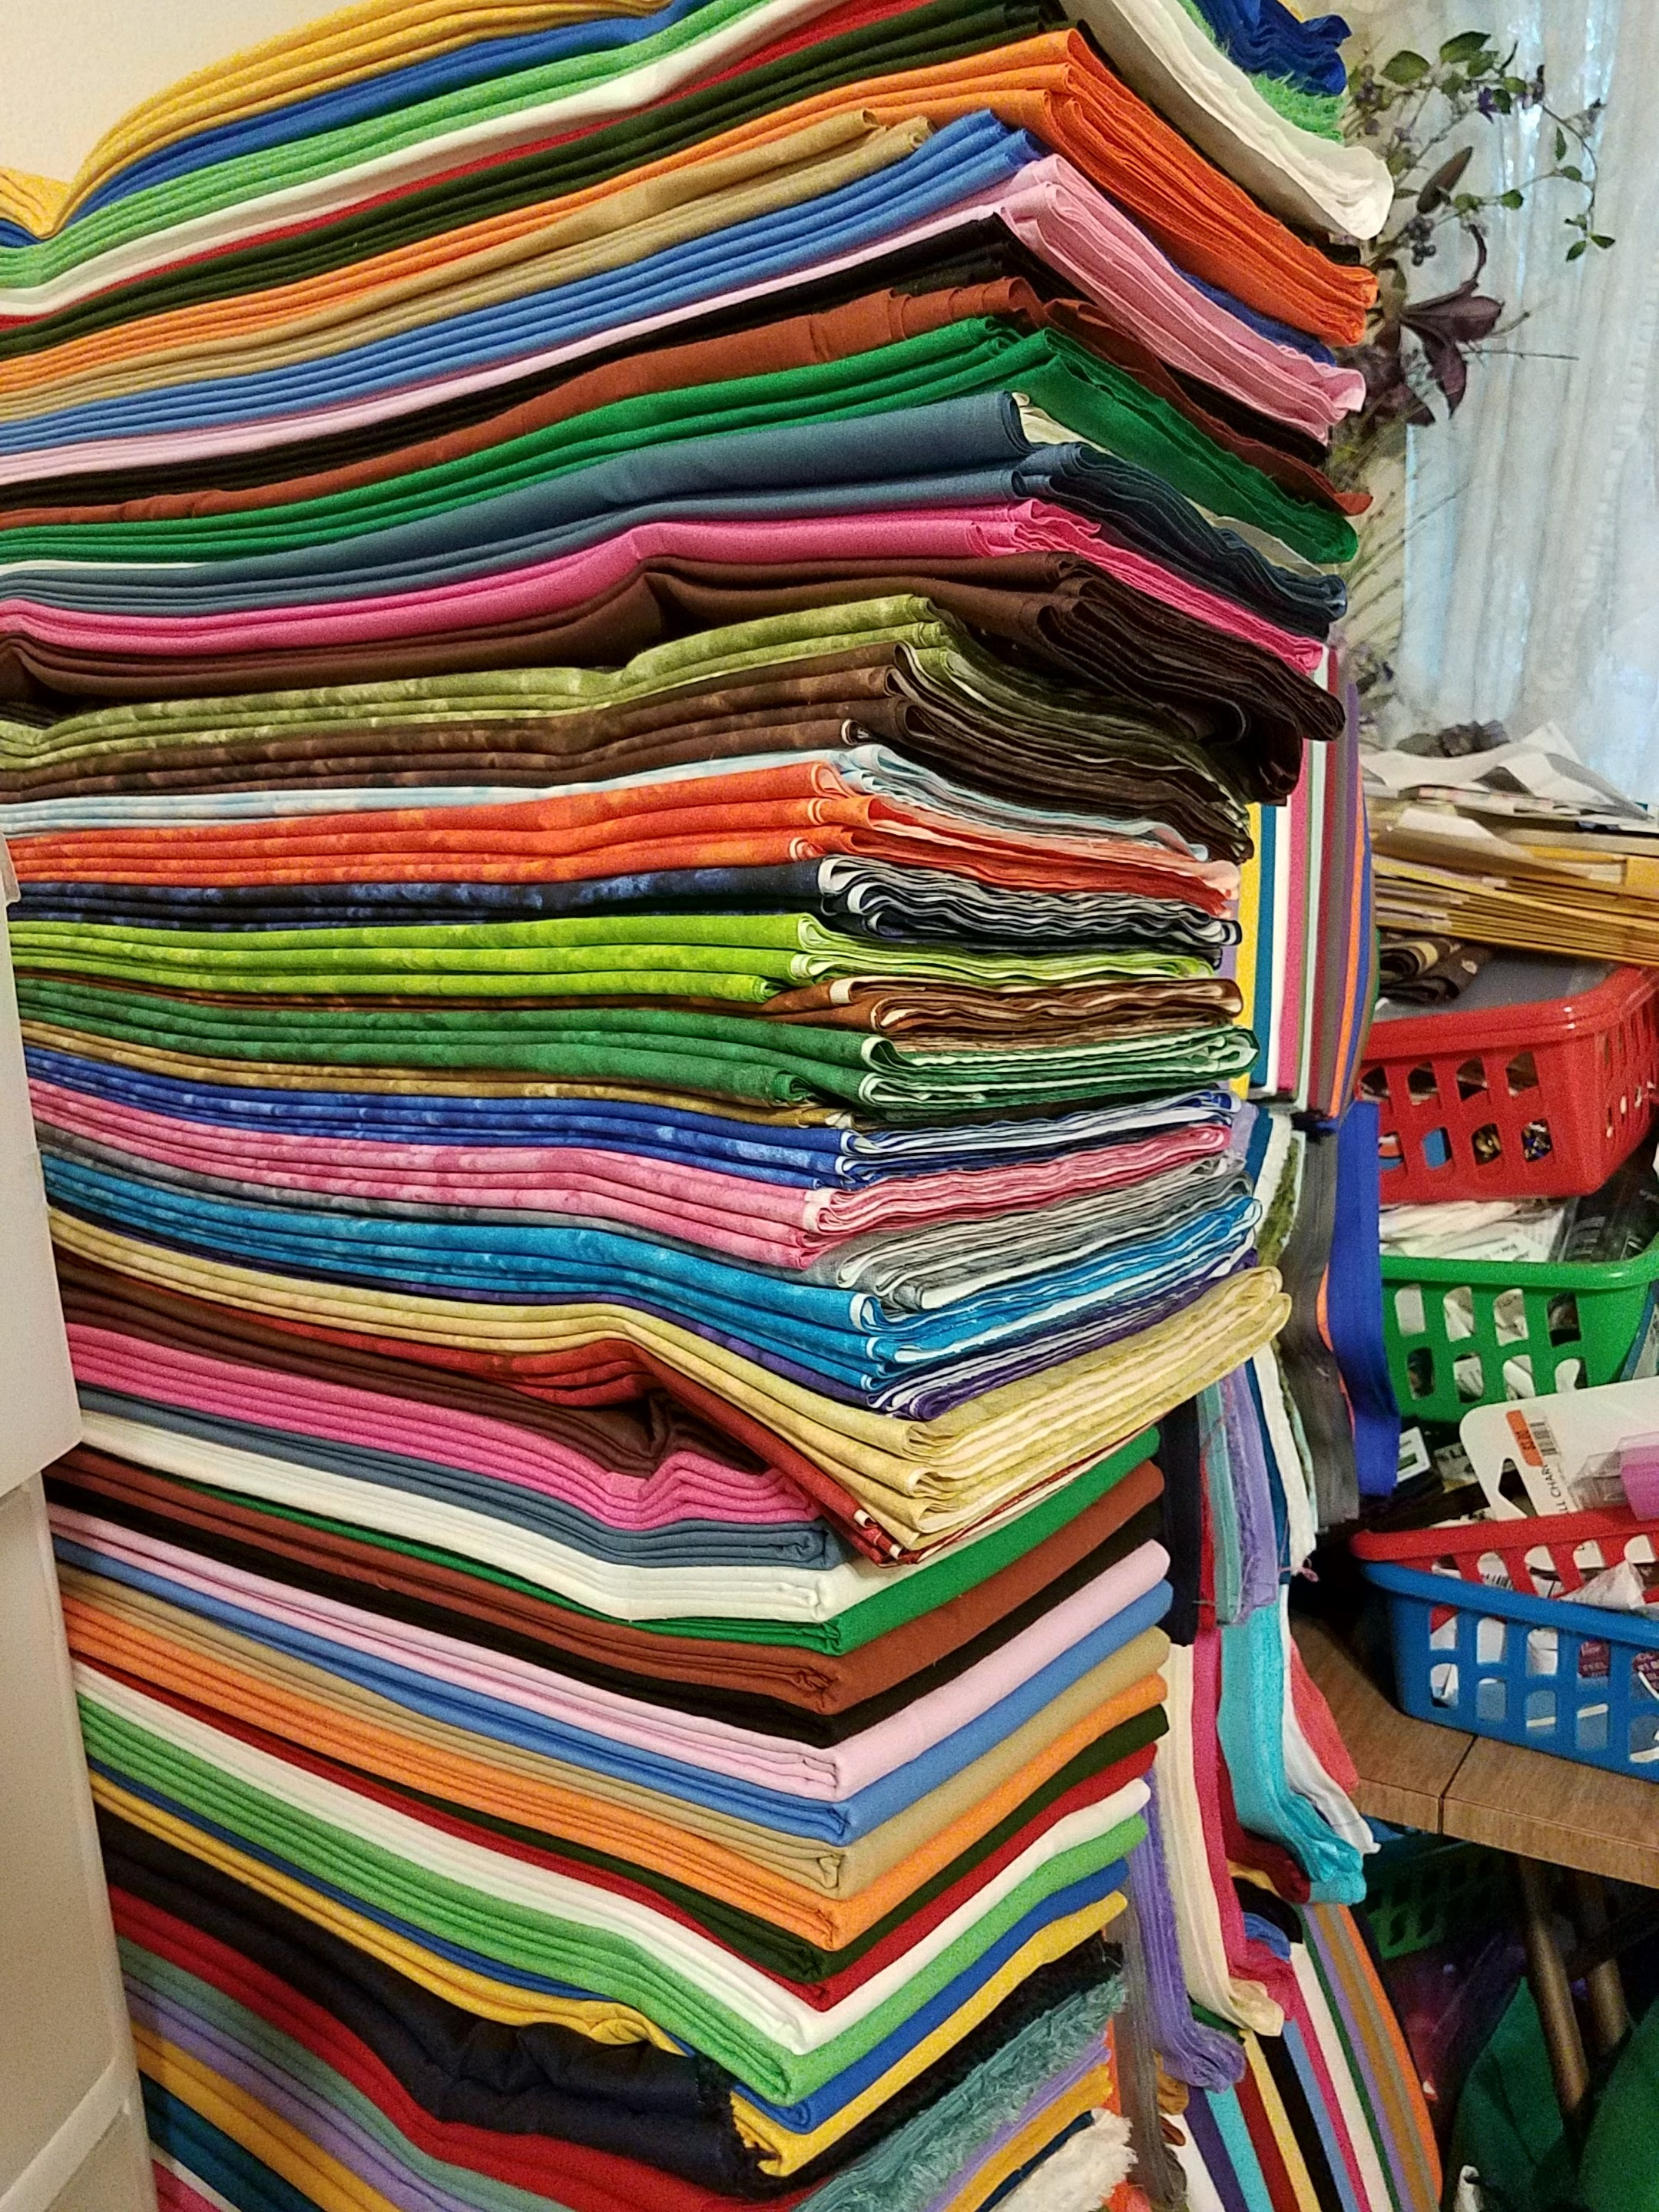 I know there is some fabric mixed in here that is not solid,but this is piled pretty high. I left the picture uncropped so you can could see more solids peeking around the back as well.